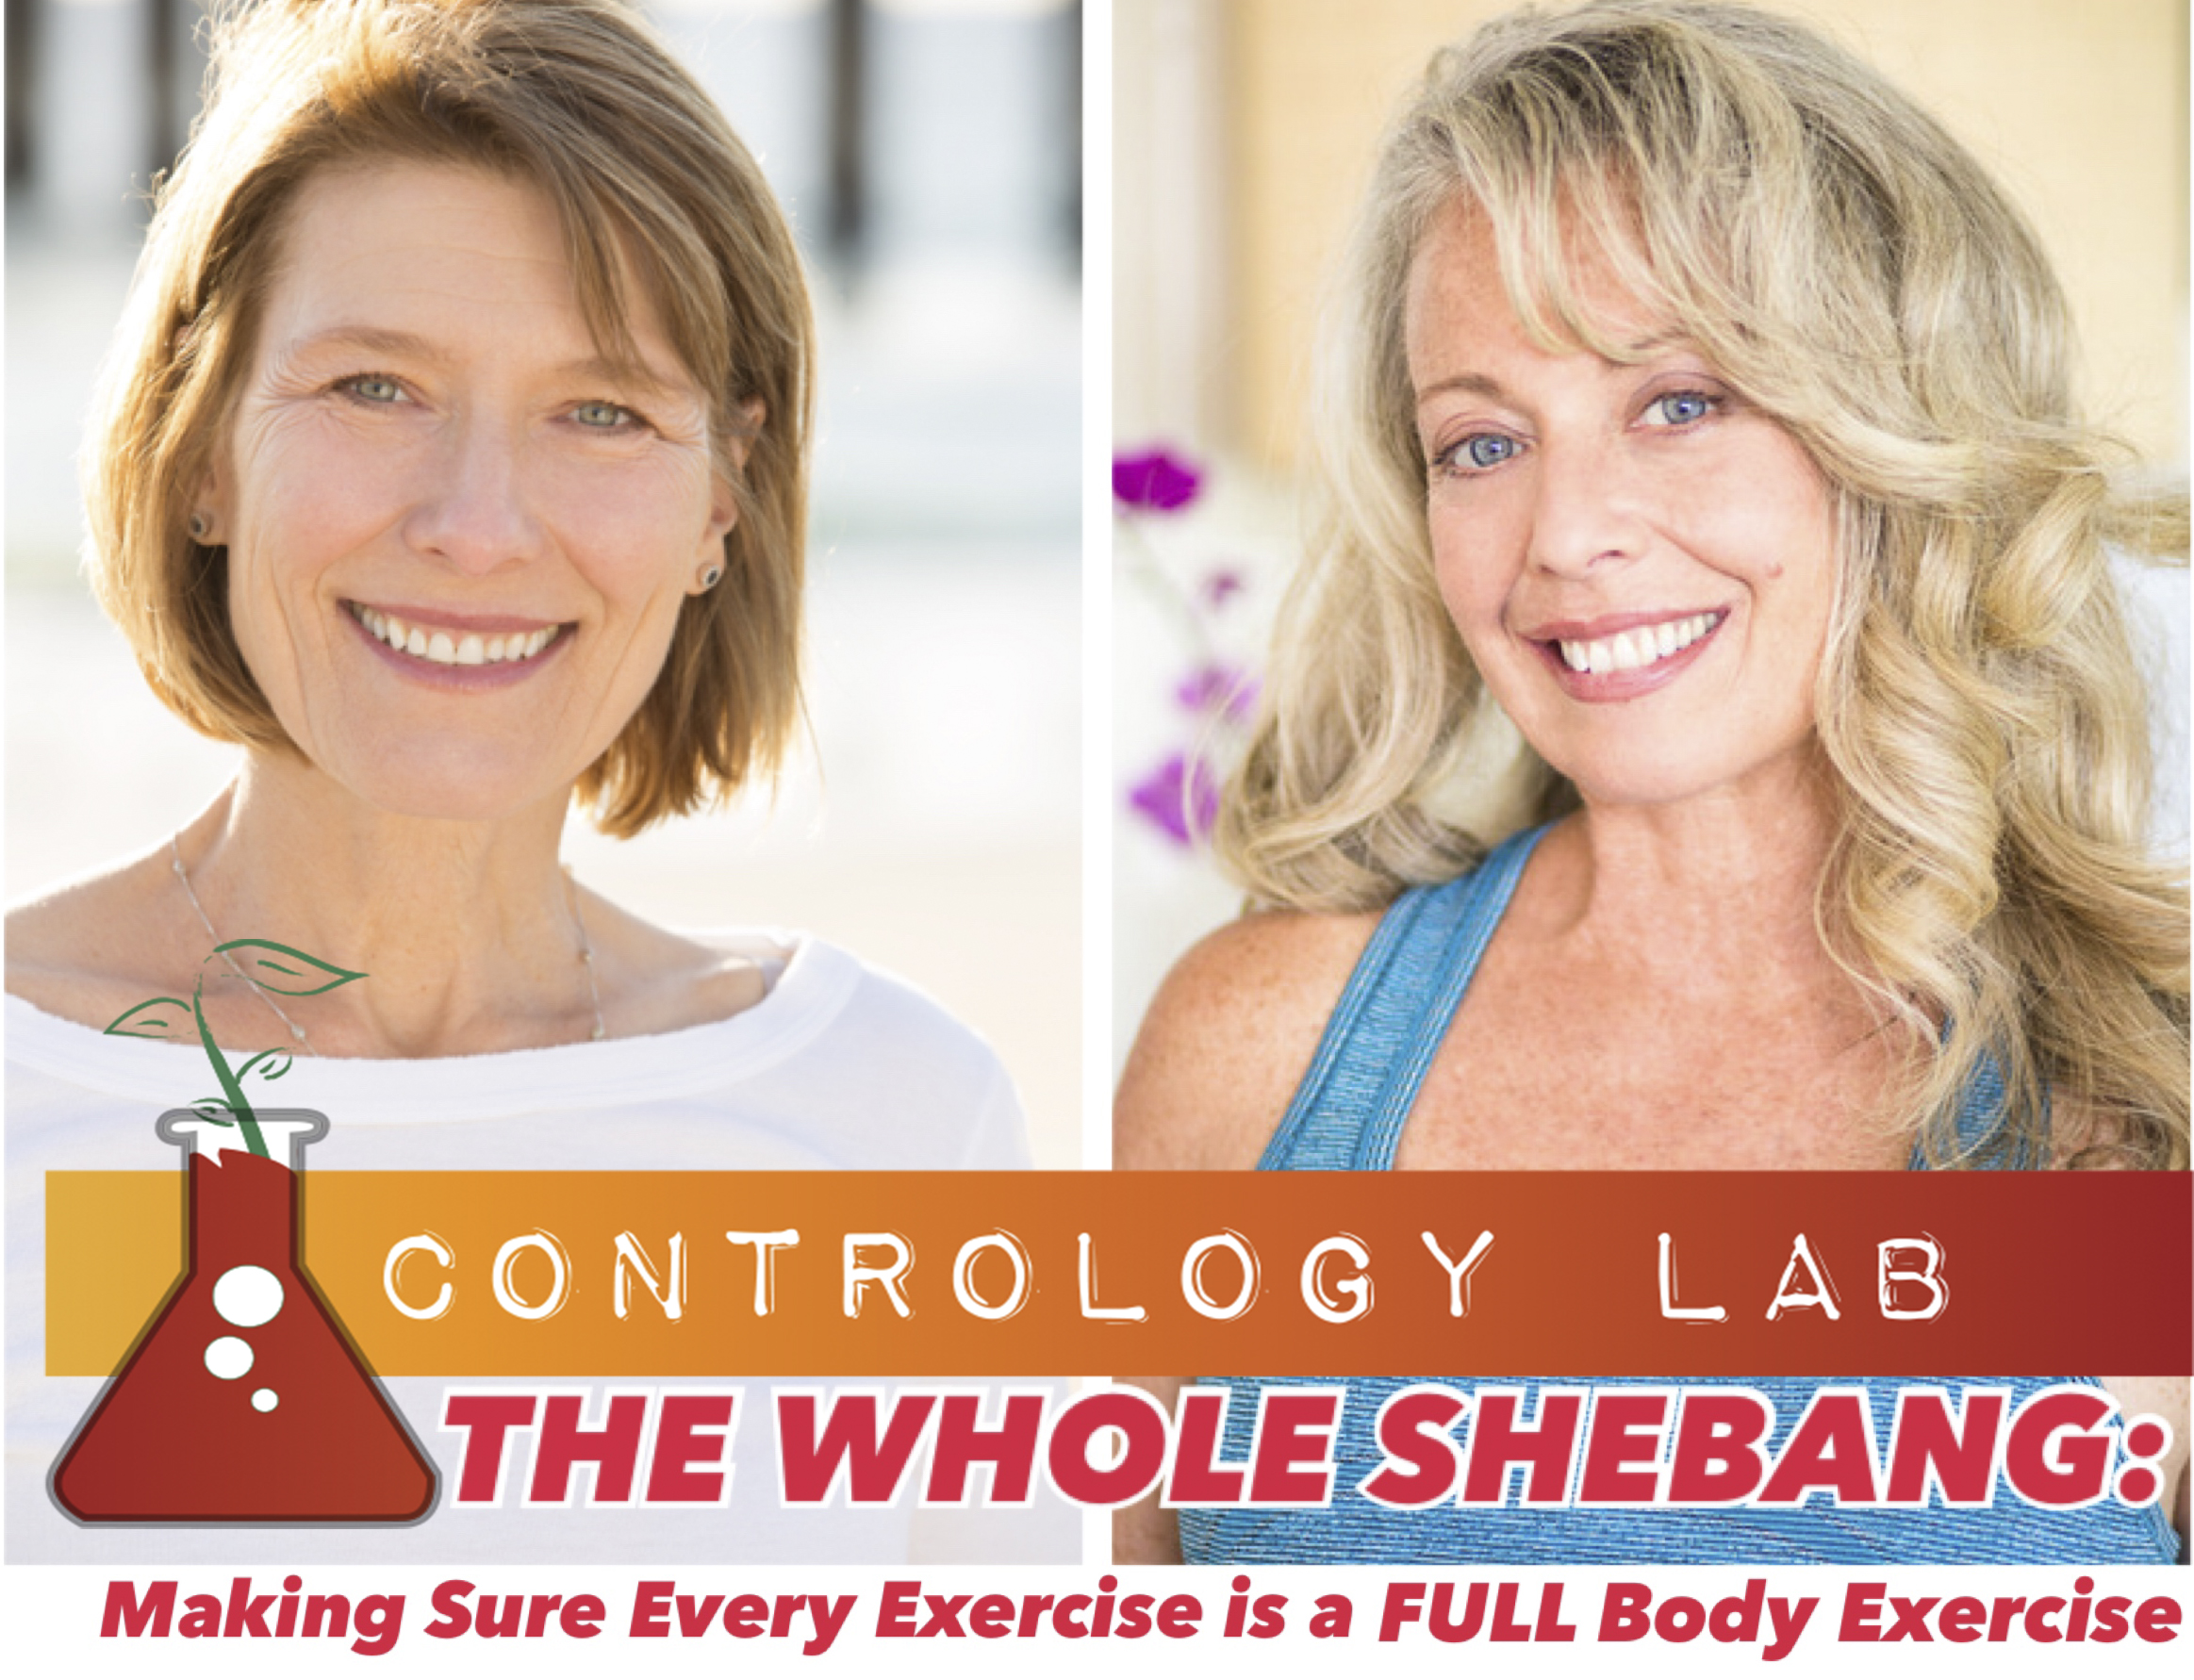 Contrology Lab with Dena Drotar and Debbie Young   Saturday, July 13th    3pm-4:30pm